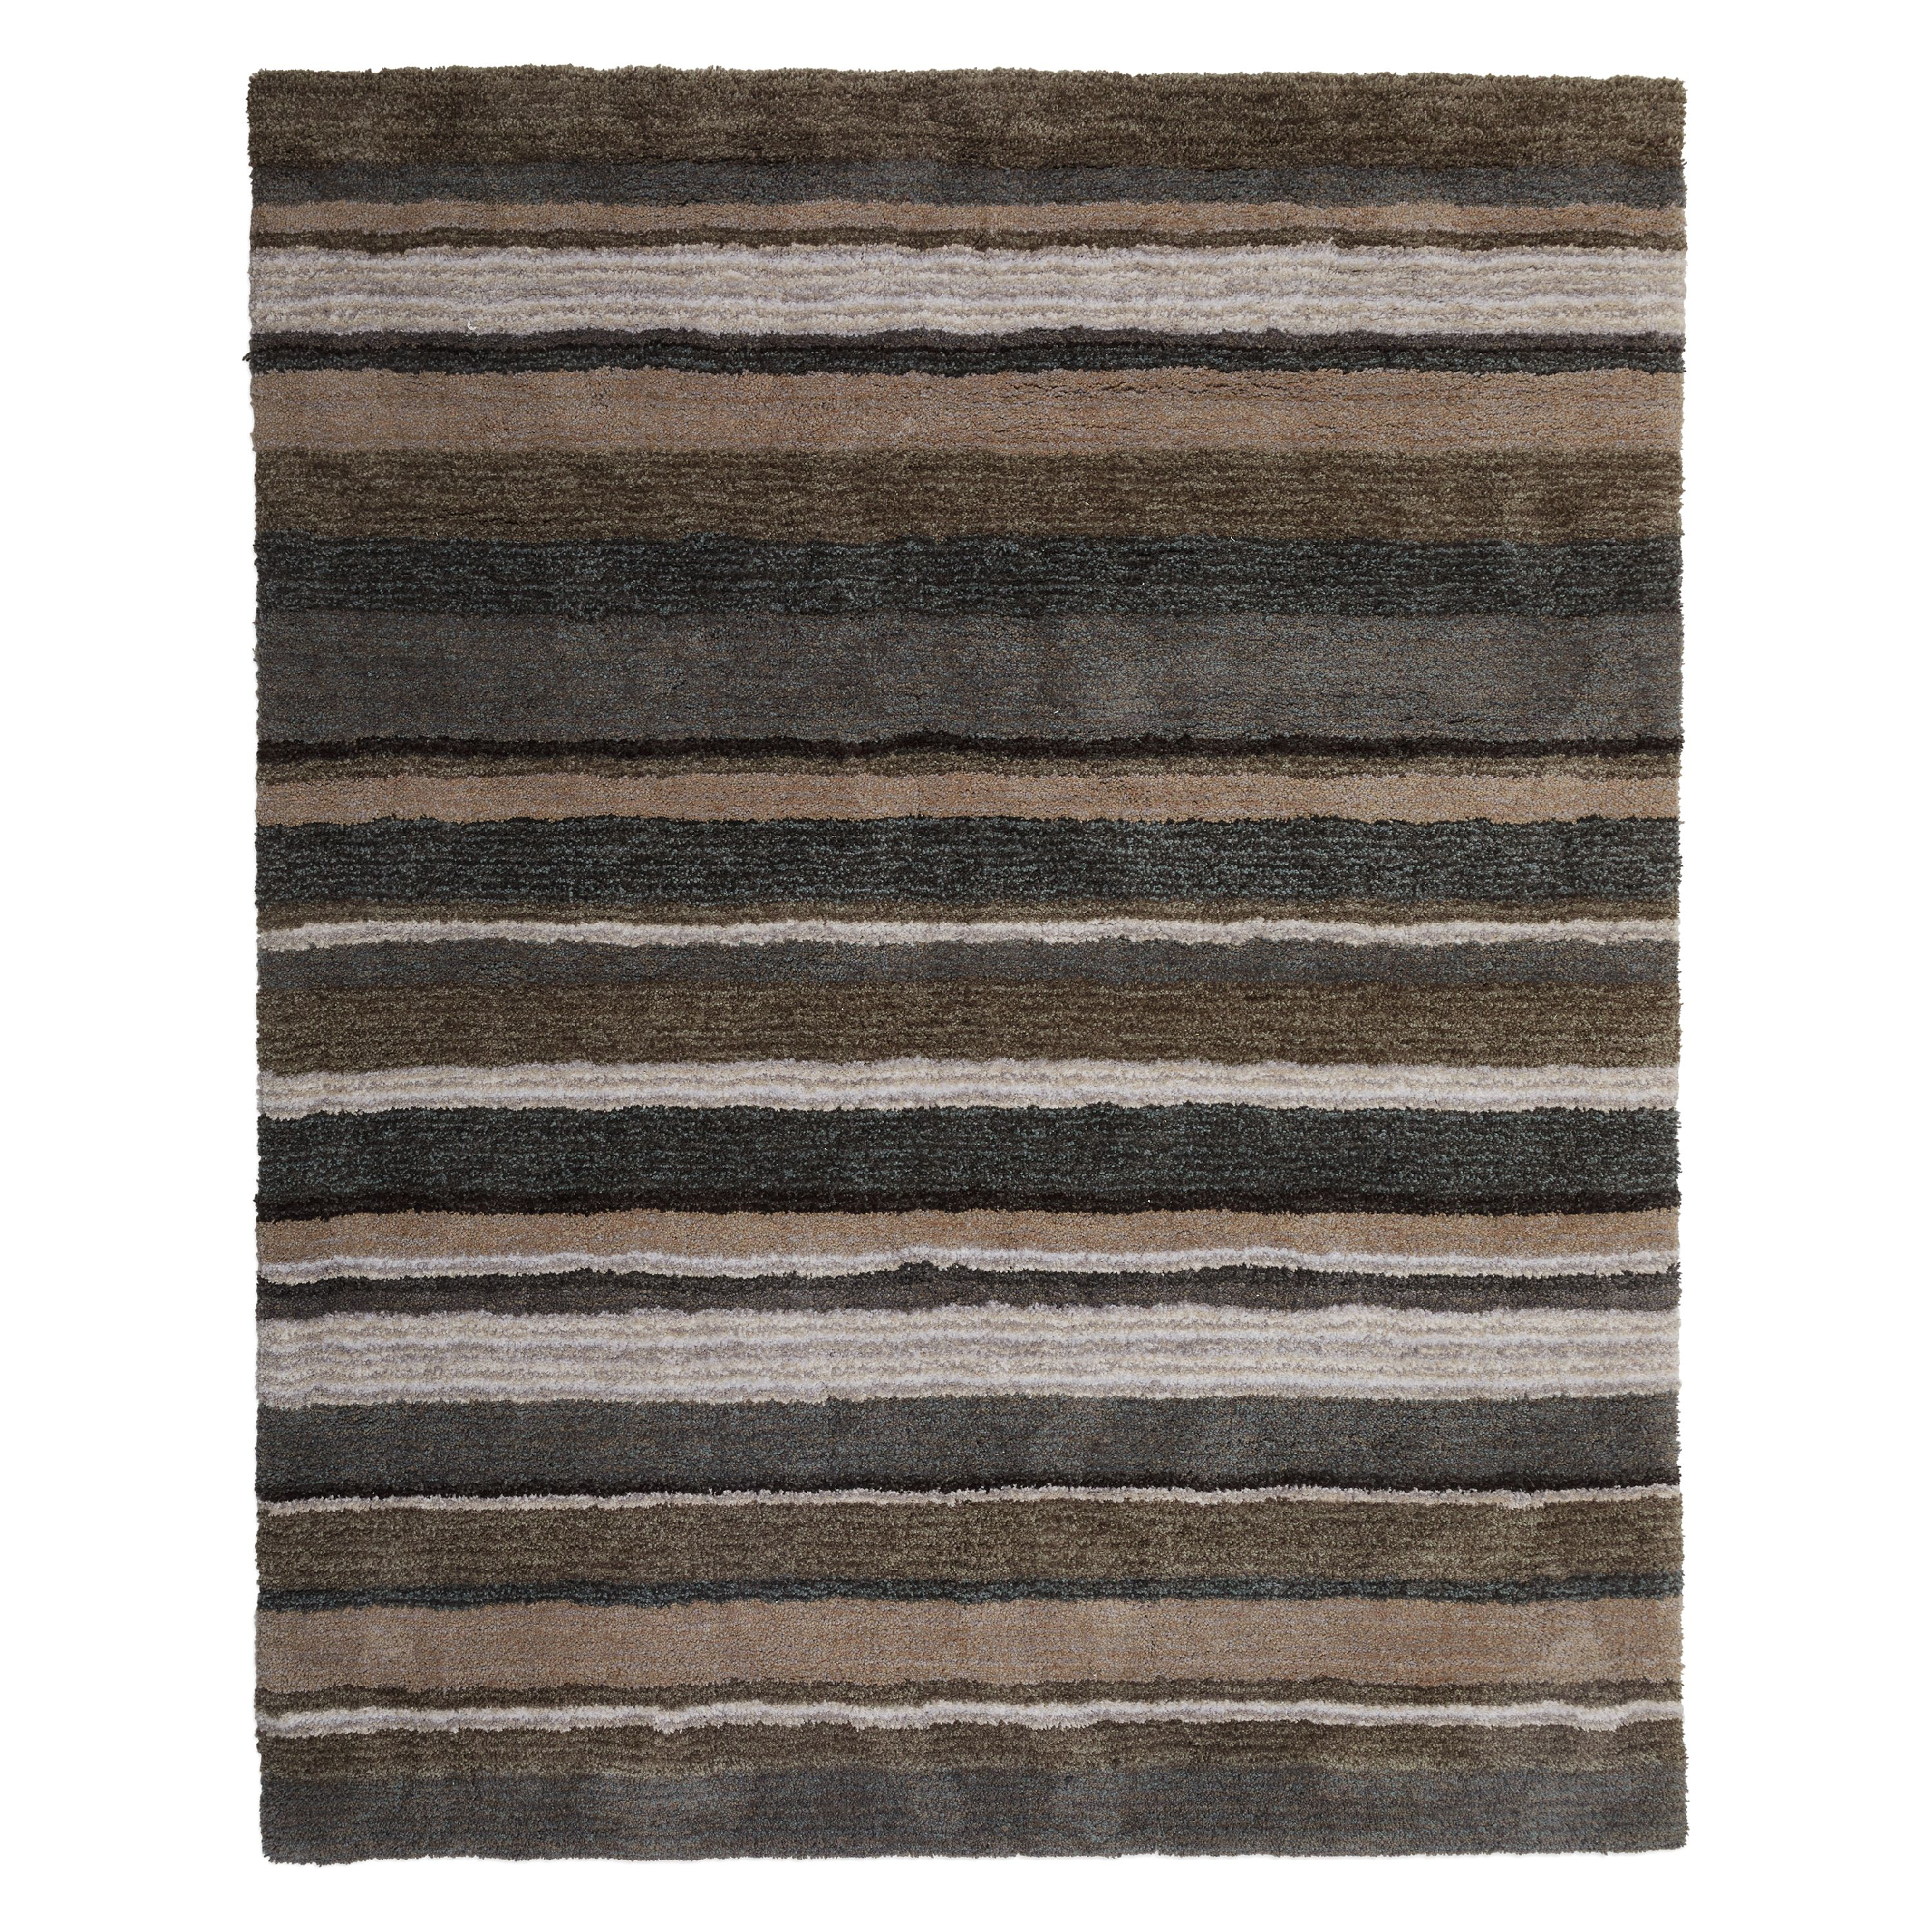 MoDRN Industrial Striped Hand Tufted Area Rug